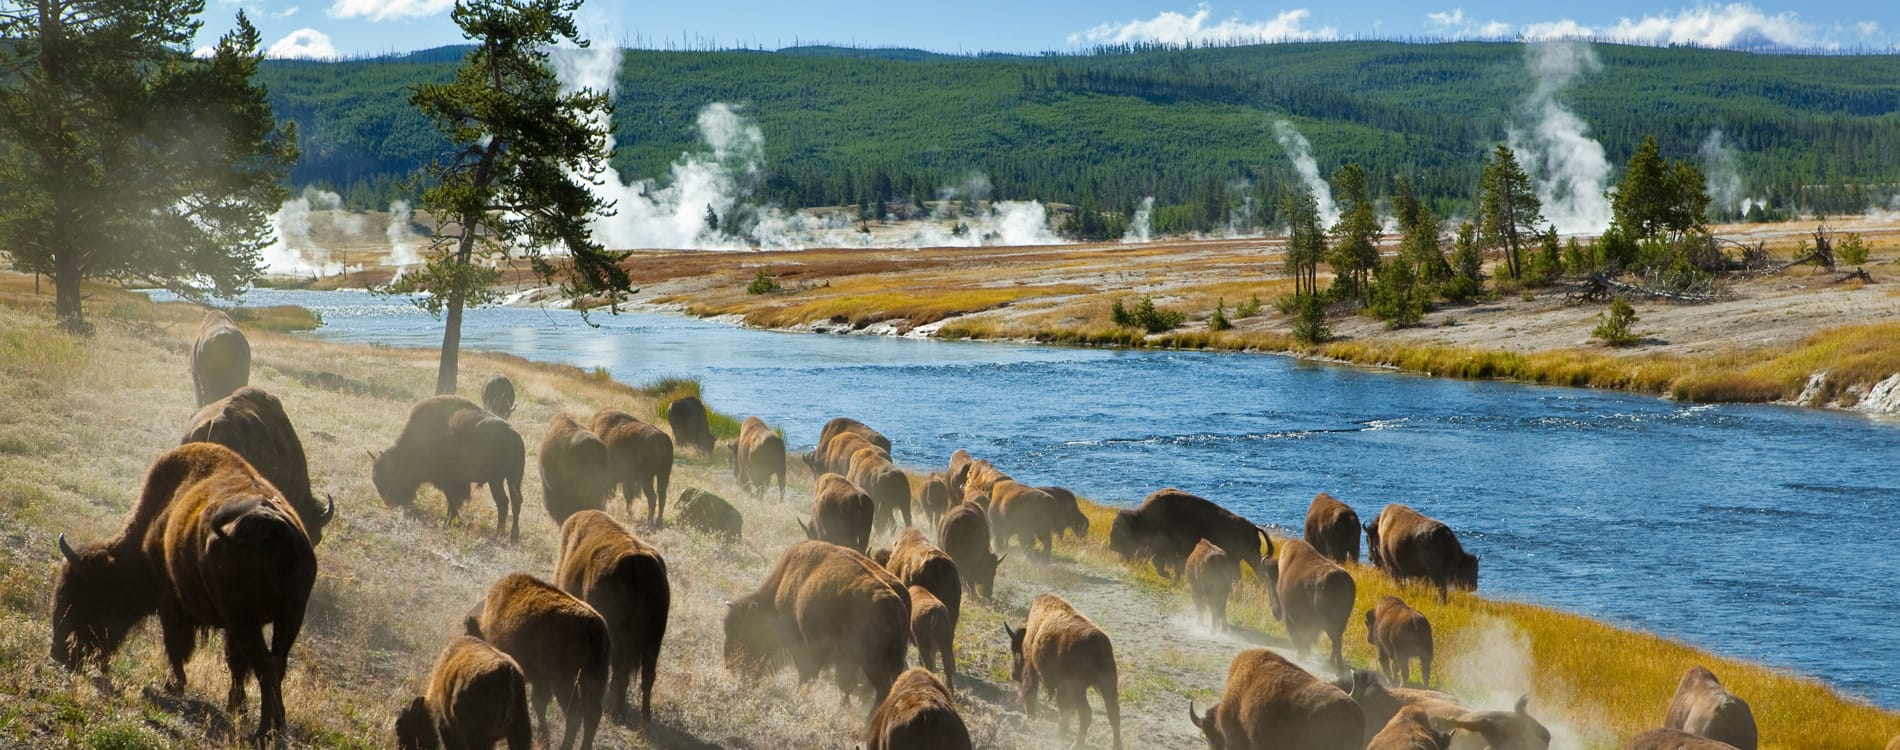 West Yellowstone, Montana